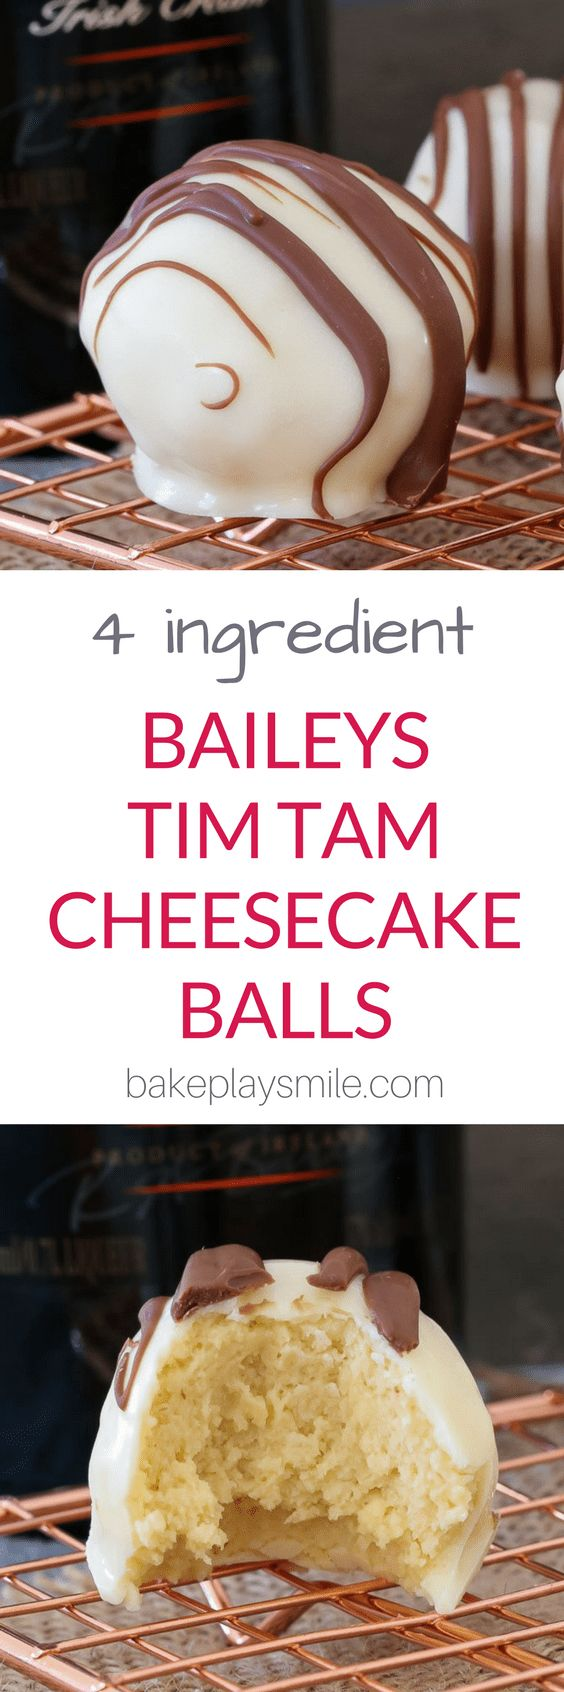 Rich, creamy and oh-so-delicious! These 4 ingredient, no-bake Baileys Tim Tam Cheesecake Balls are the perfect gift for family or friends… or the yummiest little sneaky late night treat! #baileys #cheesecake #nobake #dessert #chocolate #boozy #thermomix #